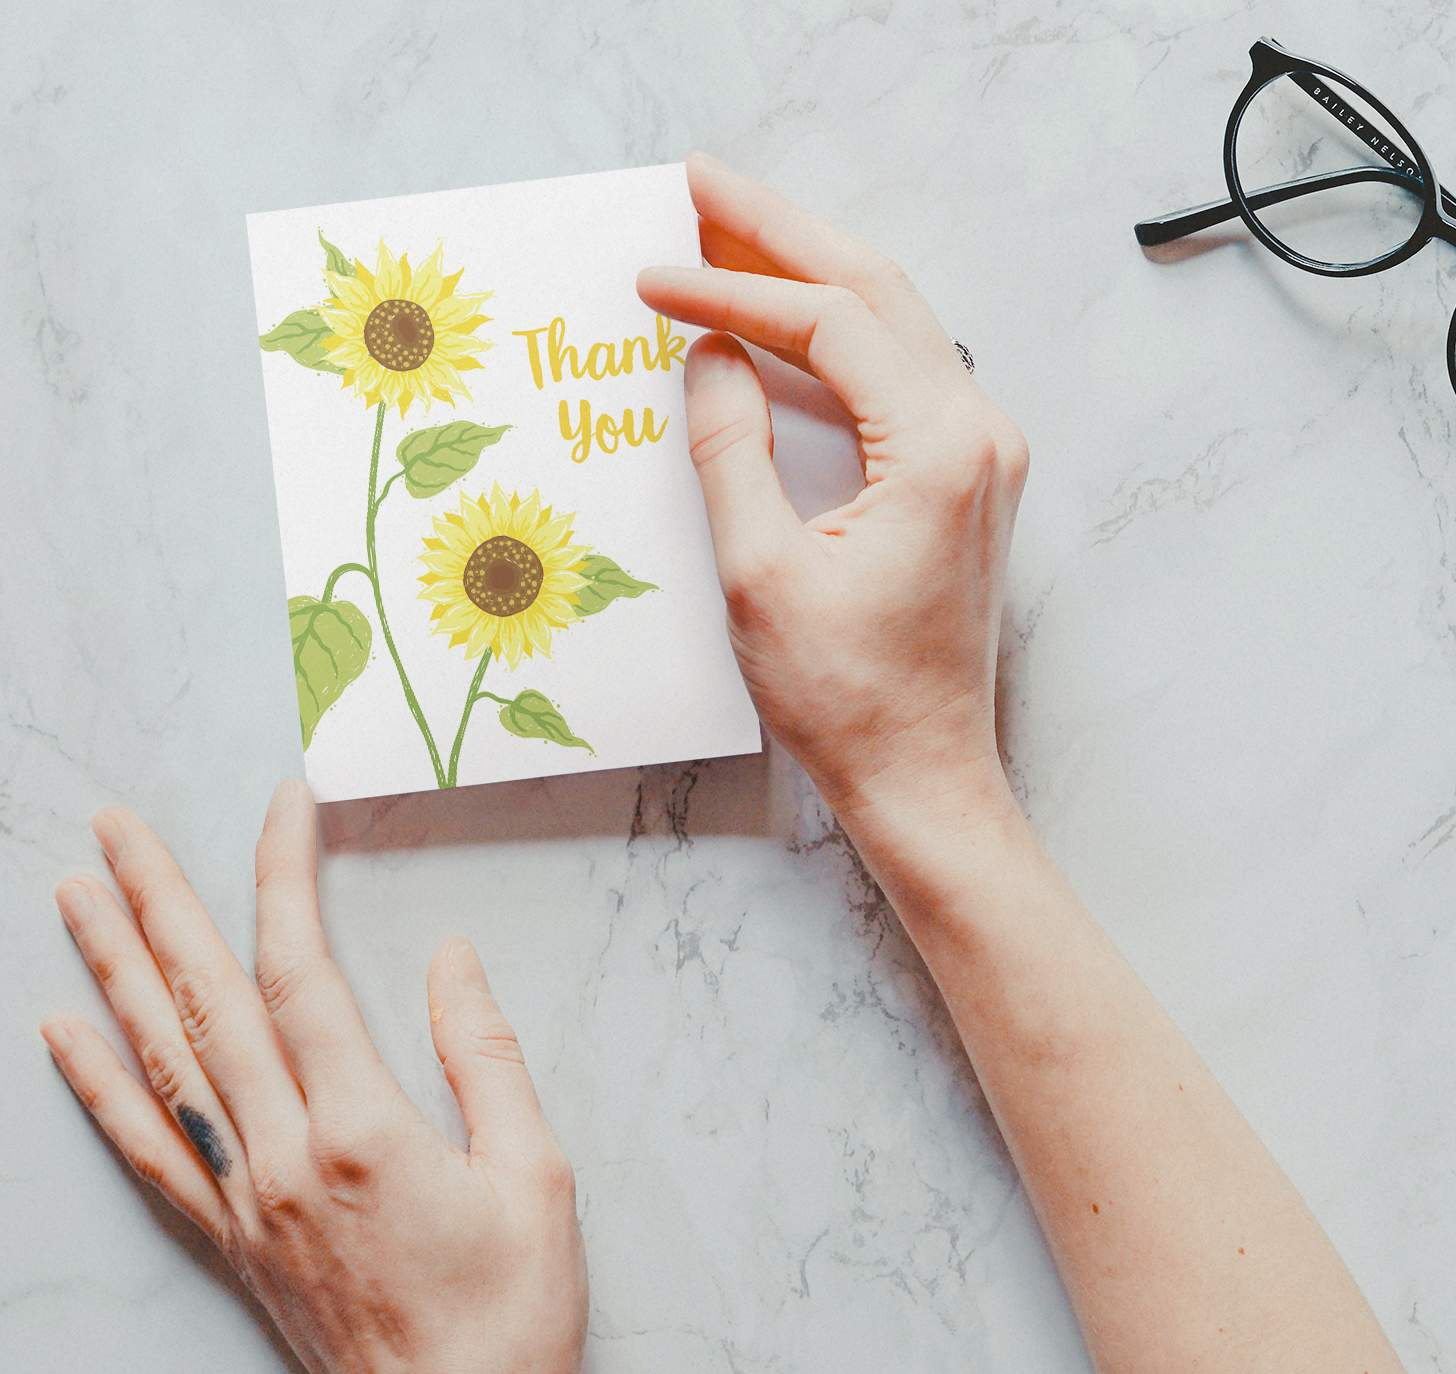 Hands holding Two yellow sunflower design with marble background